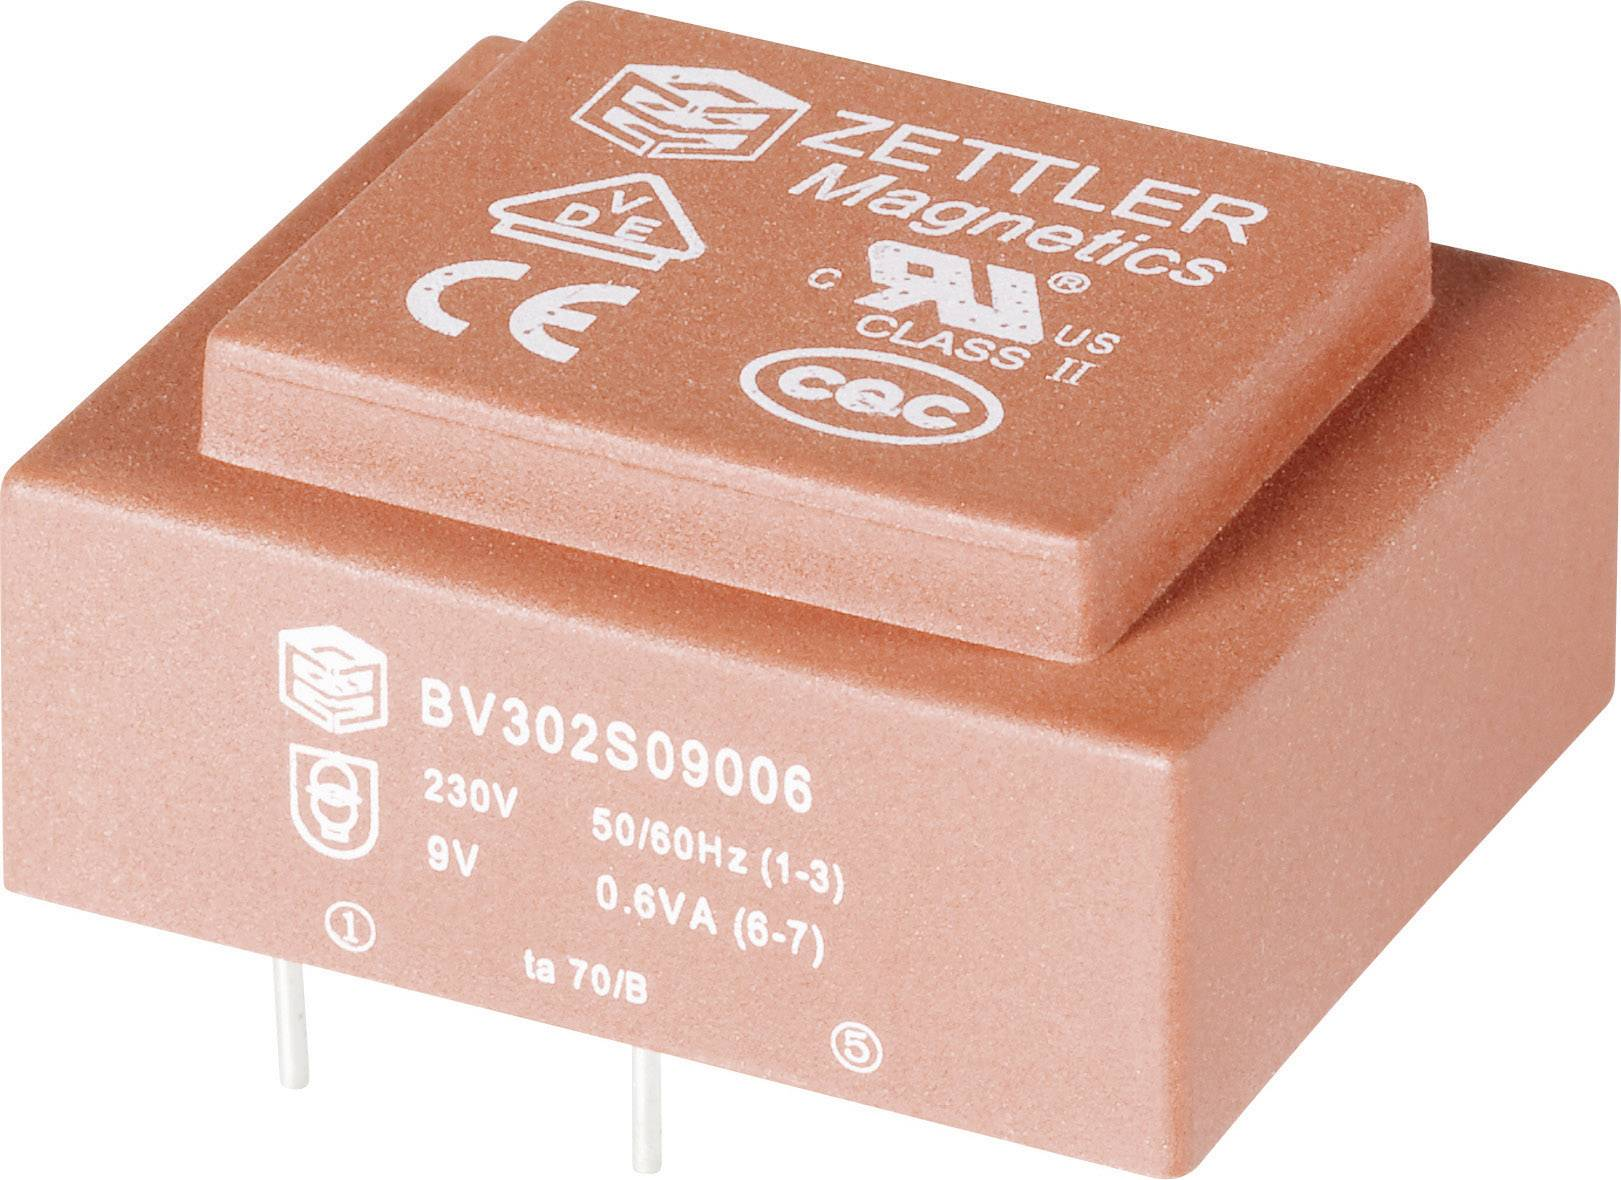 Transformátor do DPS Zettler Magnetics El30, 230 V/2x 6 V, 2x 50 mA, 1 VA